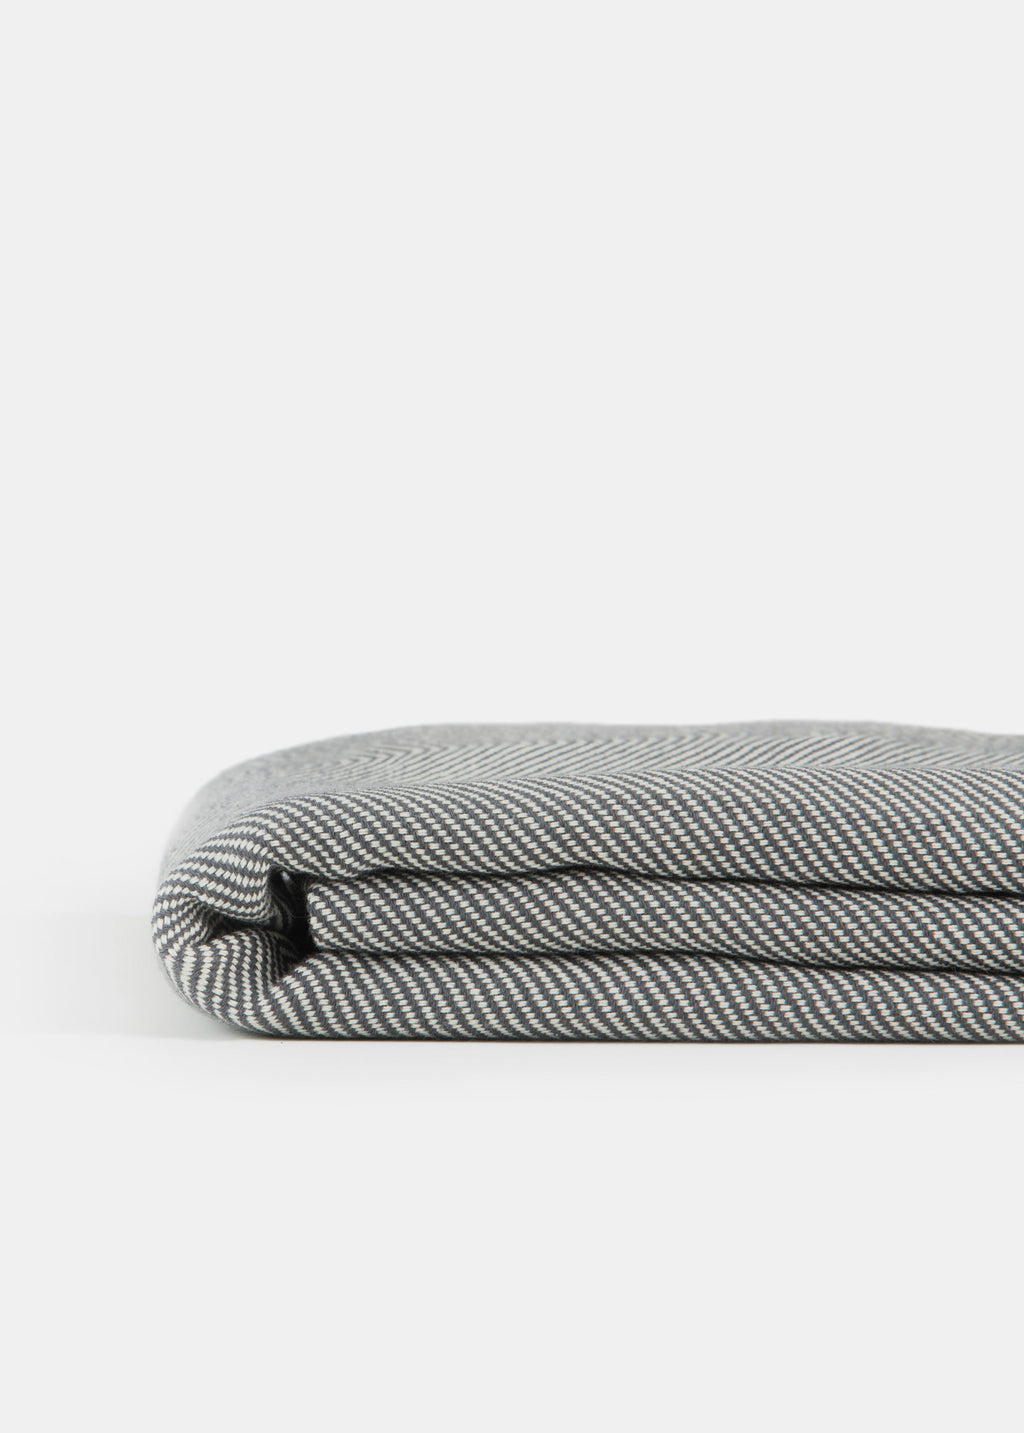 Turkish Towel Pattern Charcoal - YUYU Sustainable Home Goods